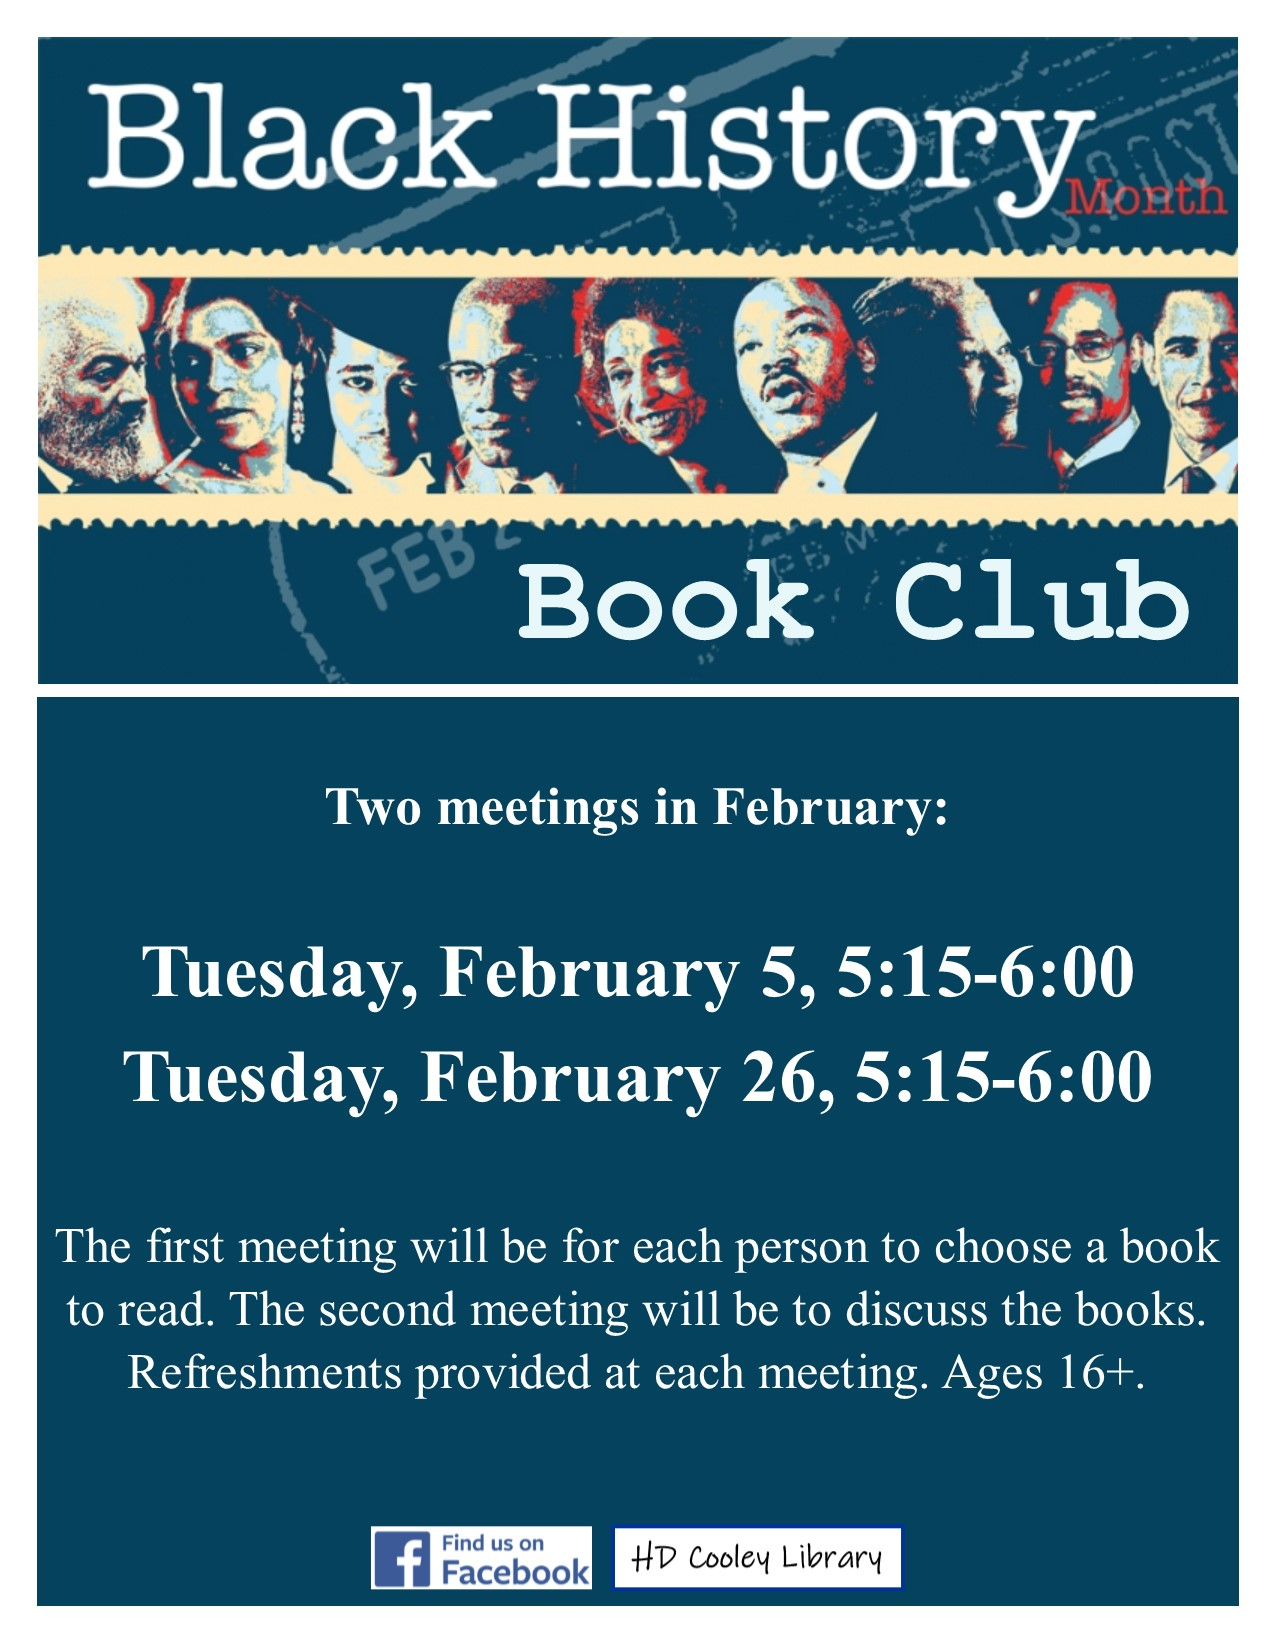 Black History Book Club meeting dates